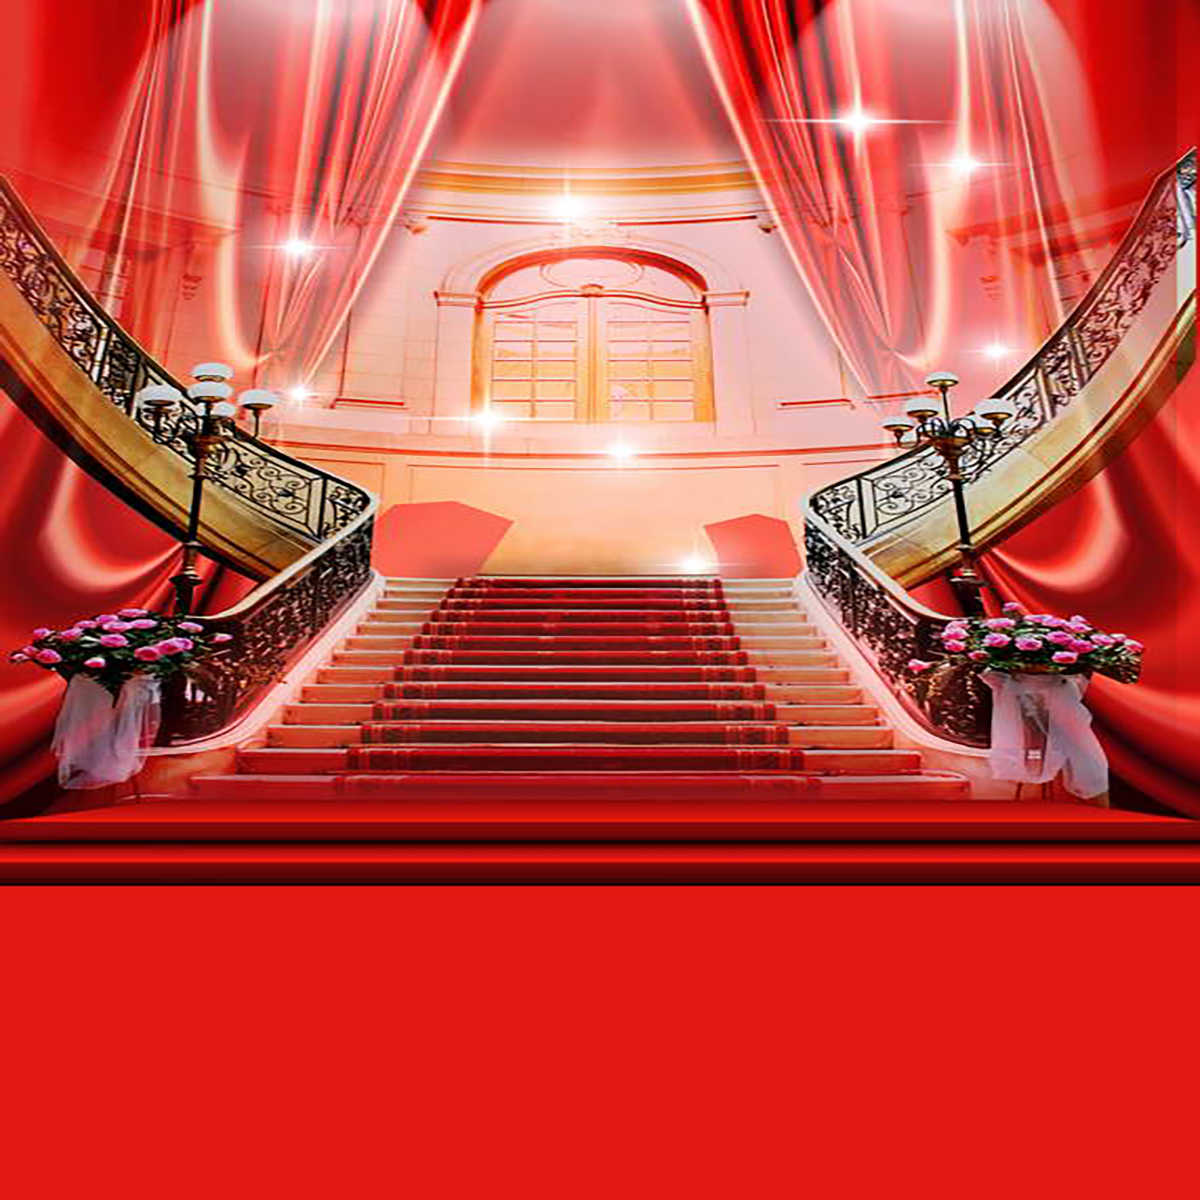 Luxury shining red carpet curtain photography backgrounds vinyl cloth high quality computer - Red carpet photographers ...